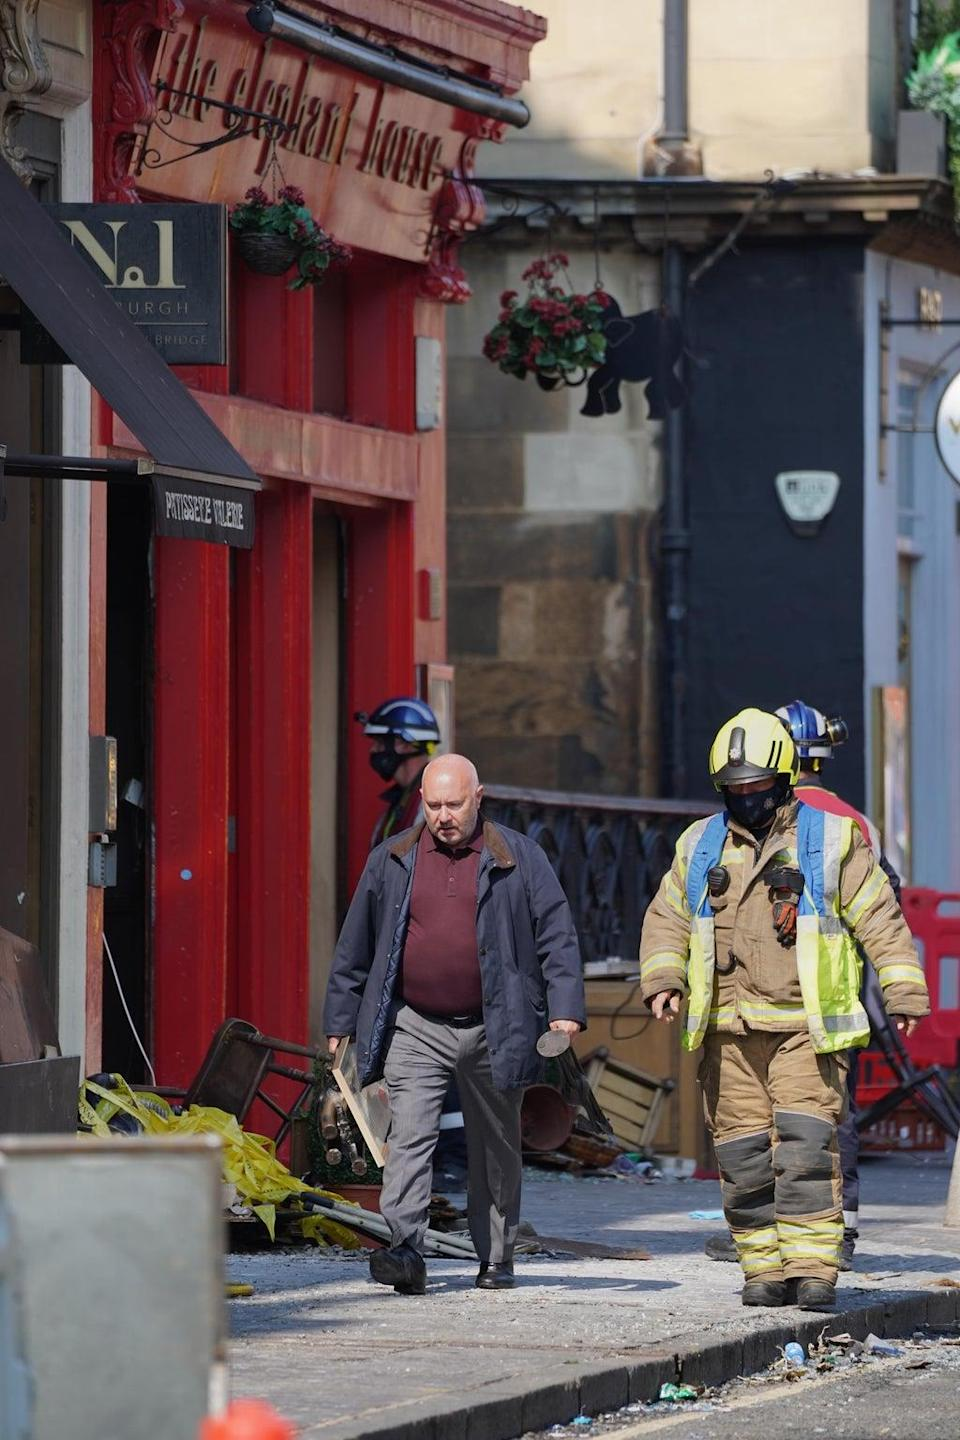 A man was seen removing items from the Elephant House cafe (Andrew Milligan/PA) (PA Wire)